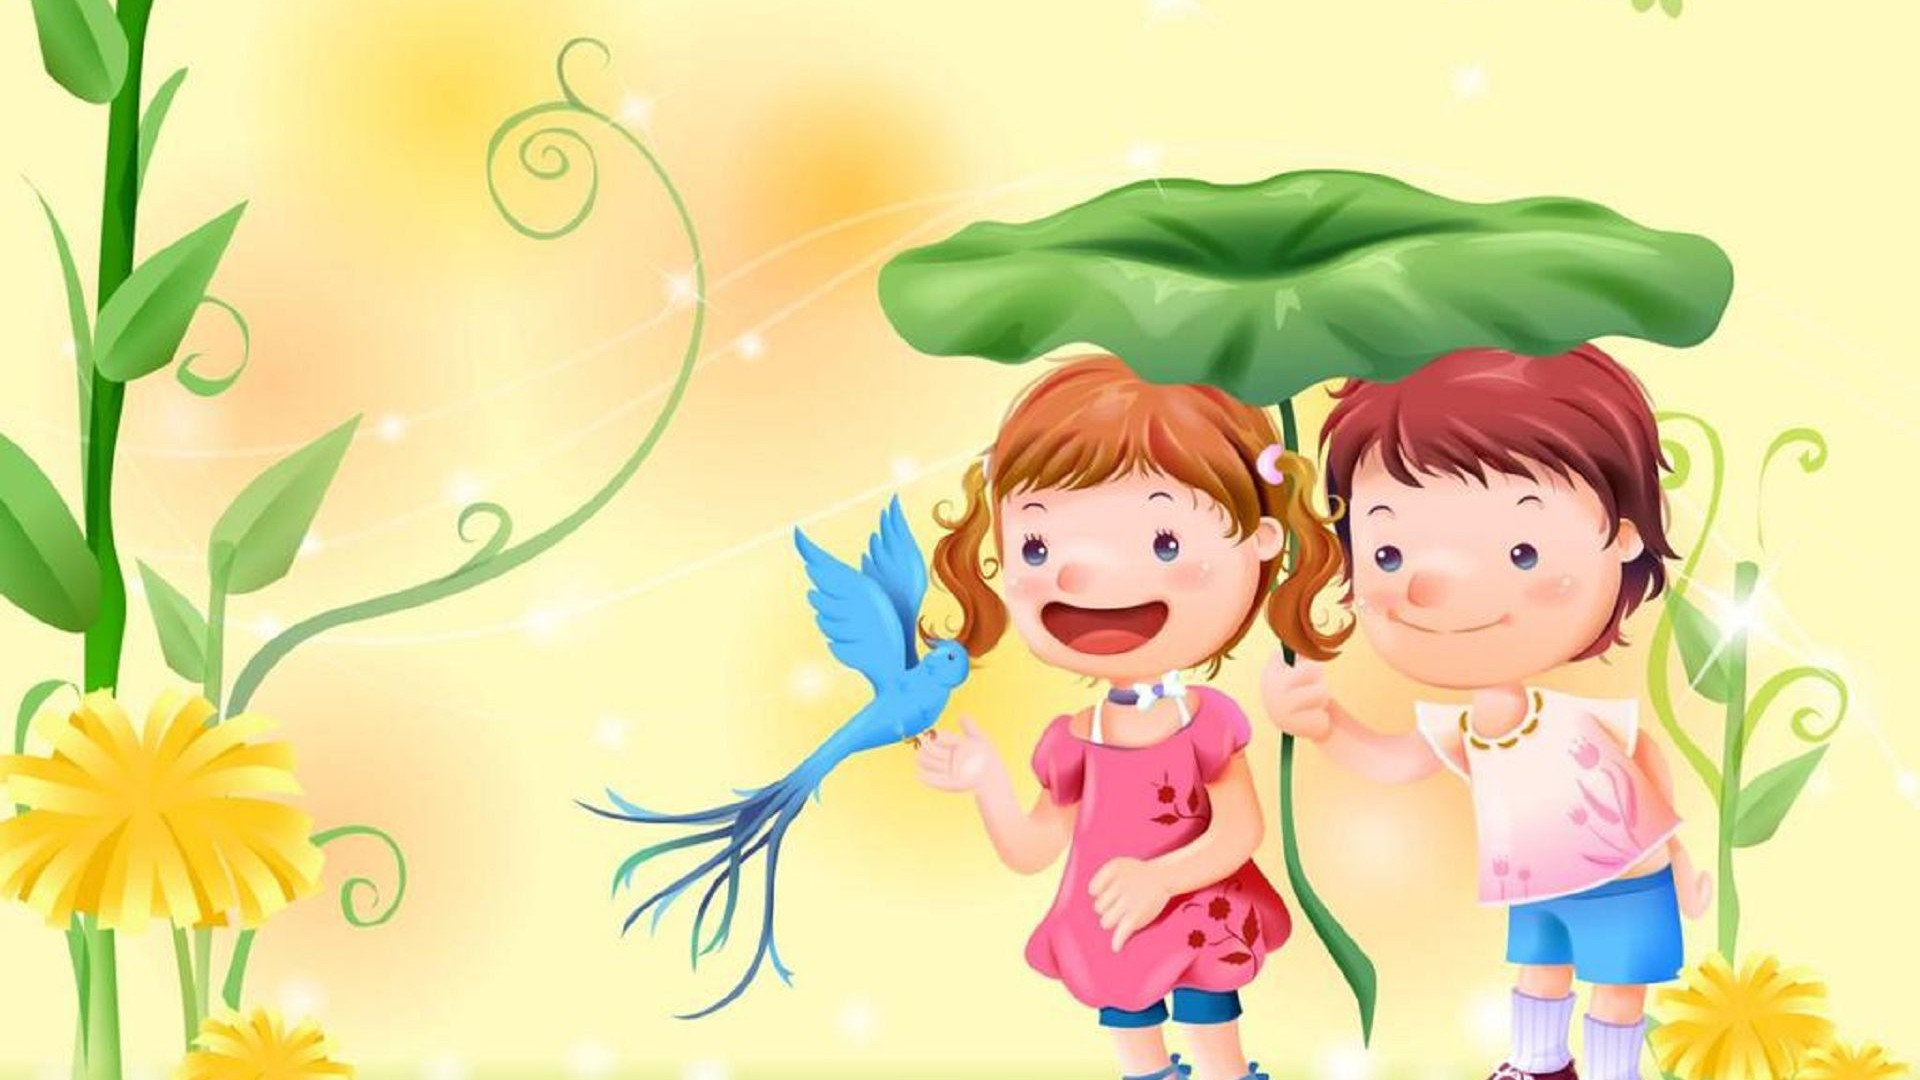 childrens day greetings and hd wallpapers - Images For Childrens